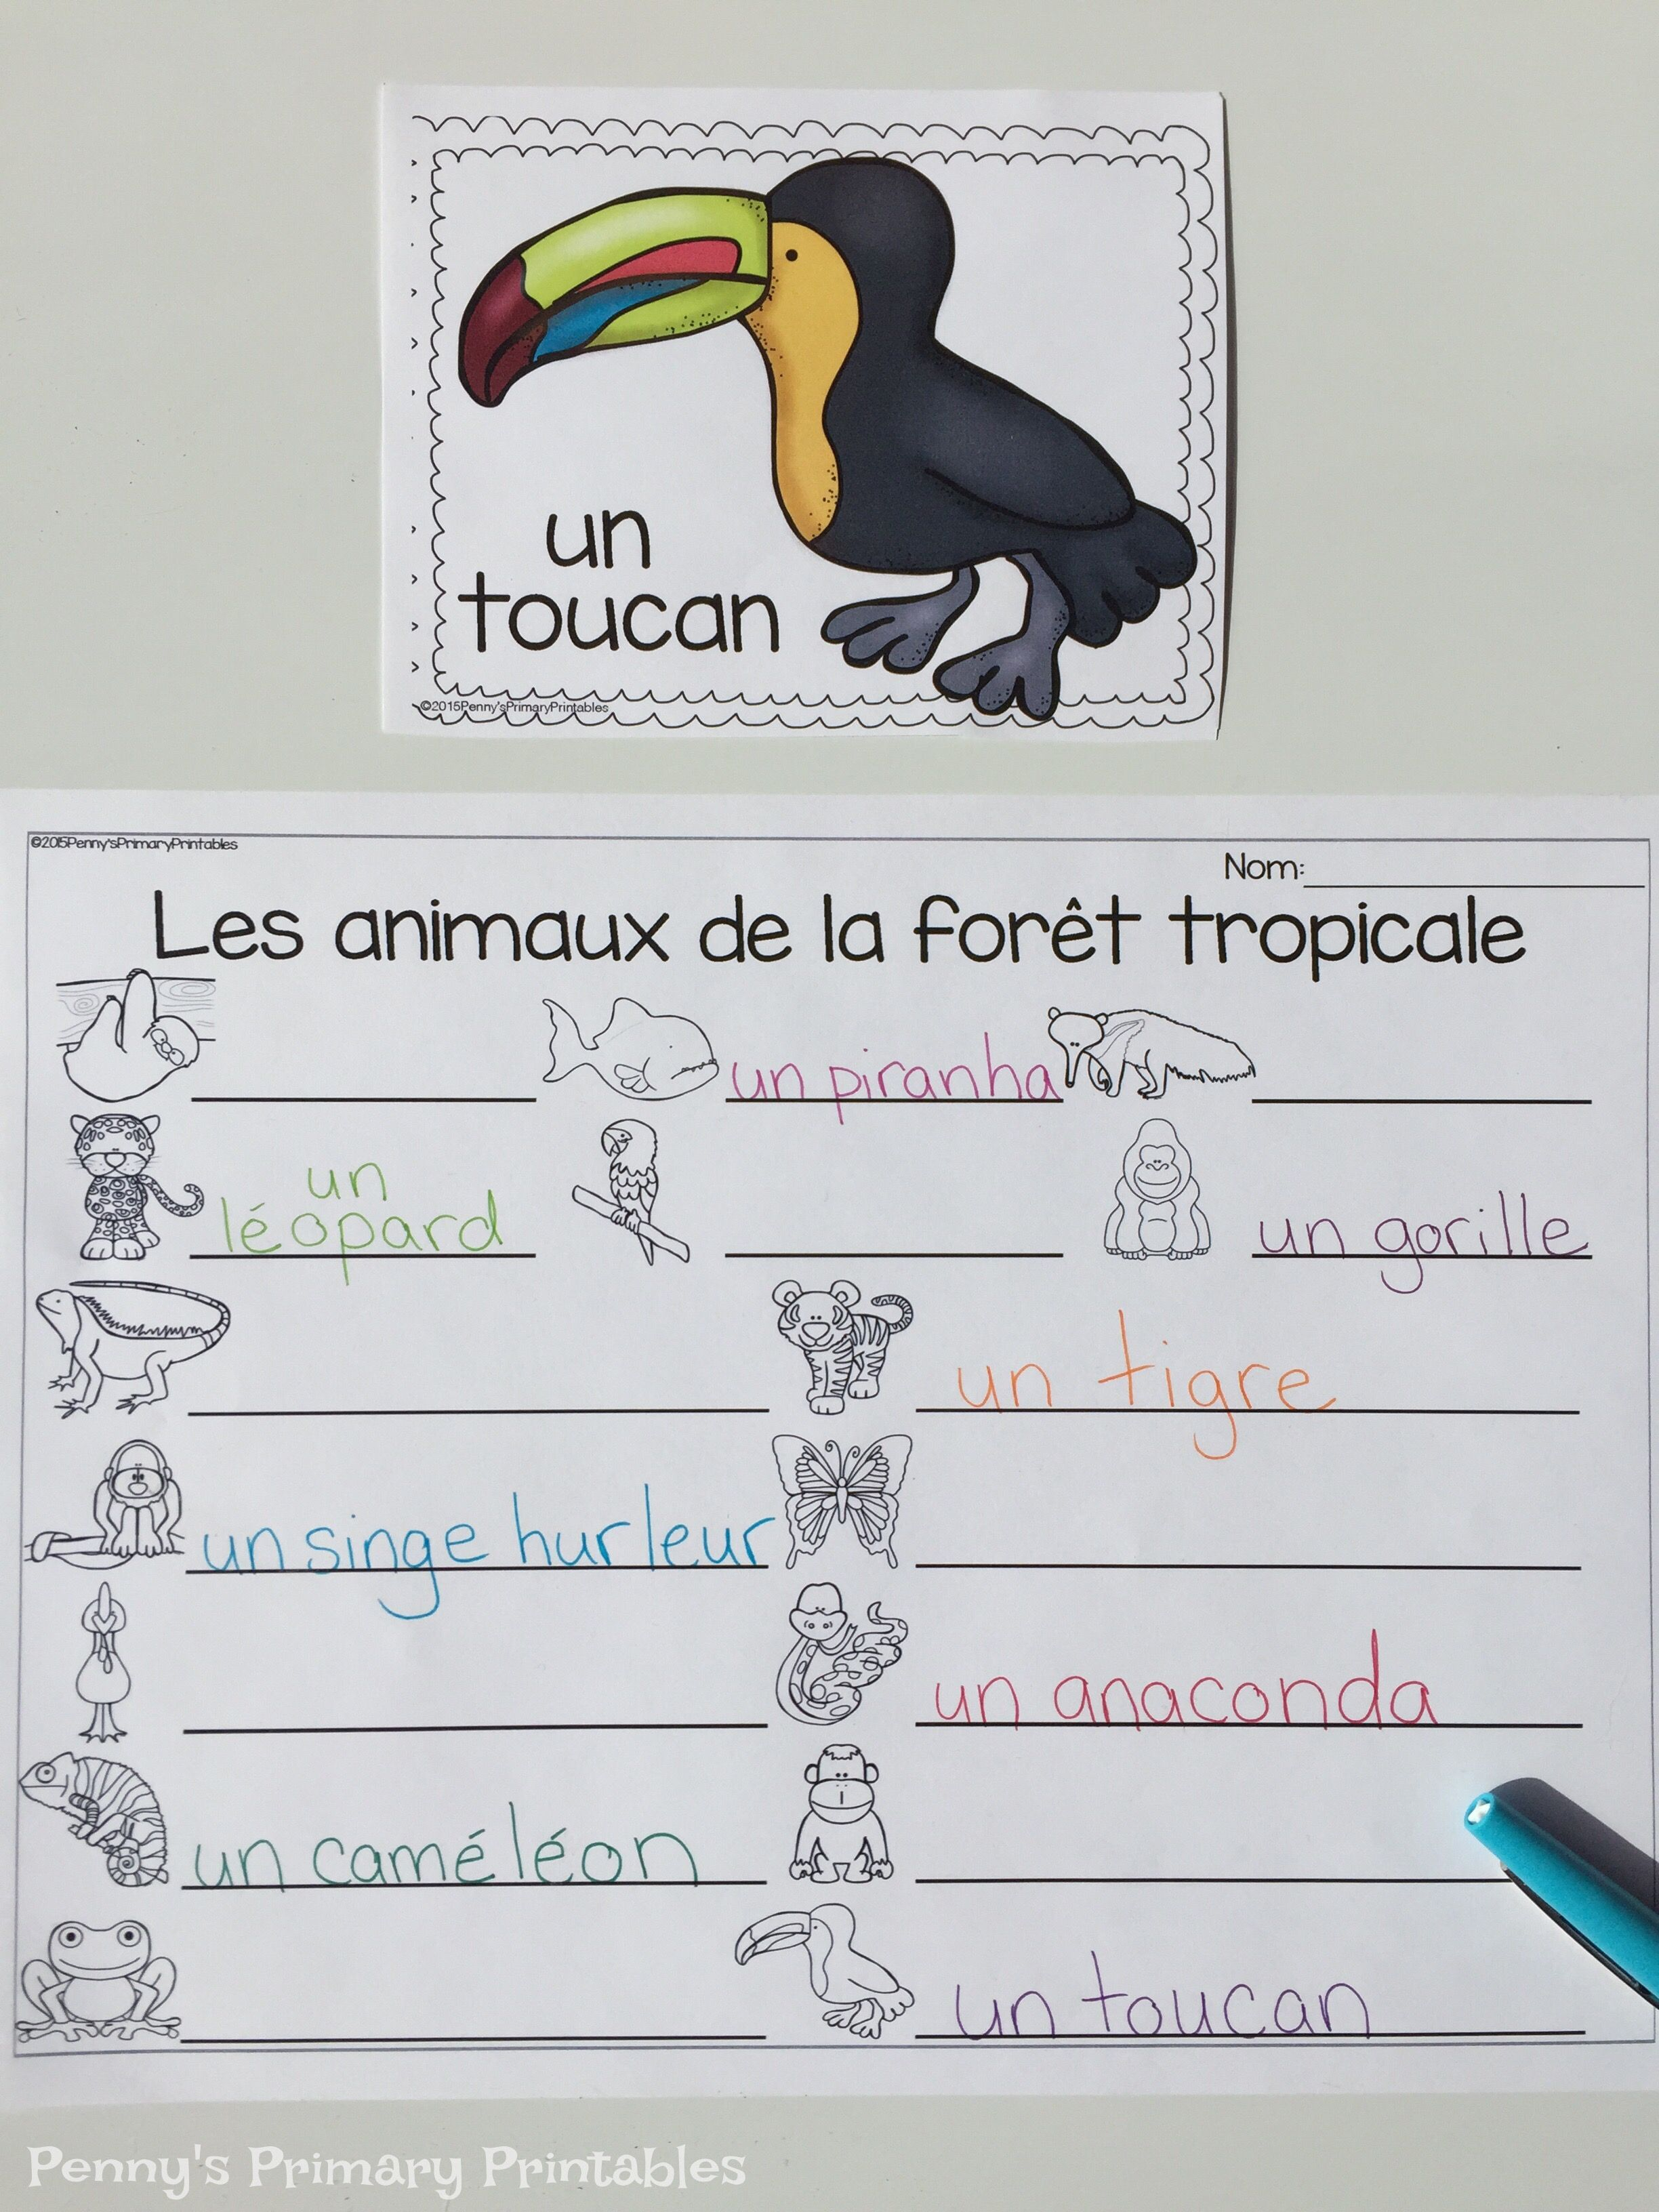 All About Rainforest Animals Practice Reading And Writing French Rainforest Animal Words In This Rainforest Animals Independent Activities Literacy Activities